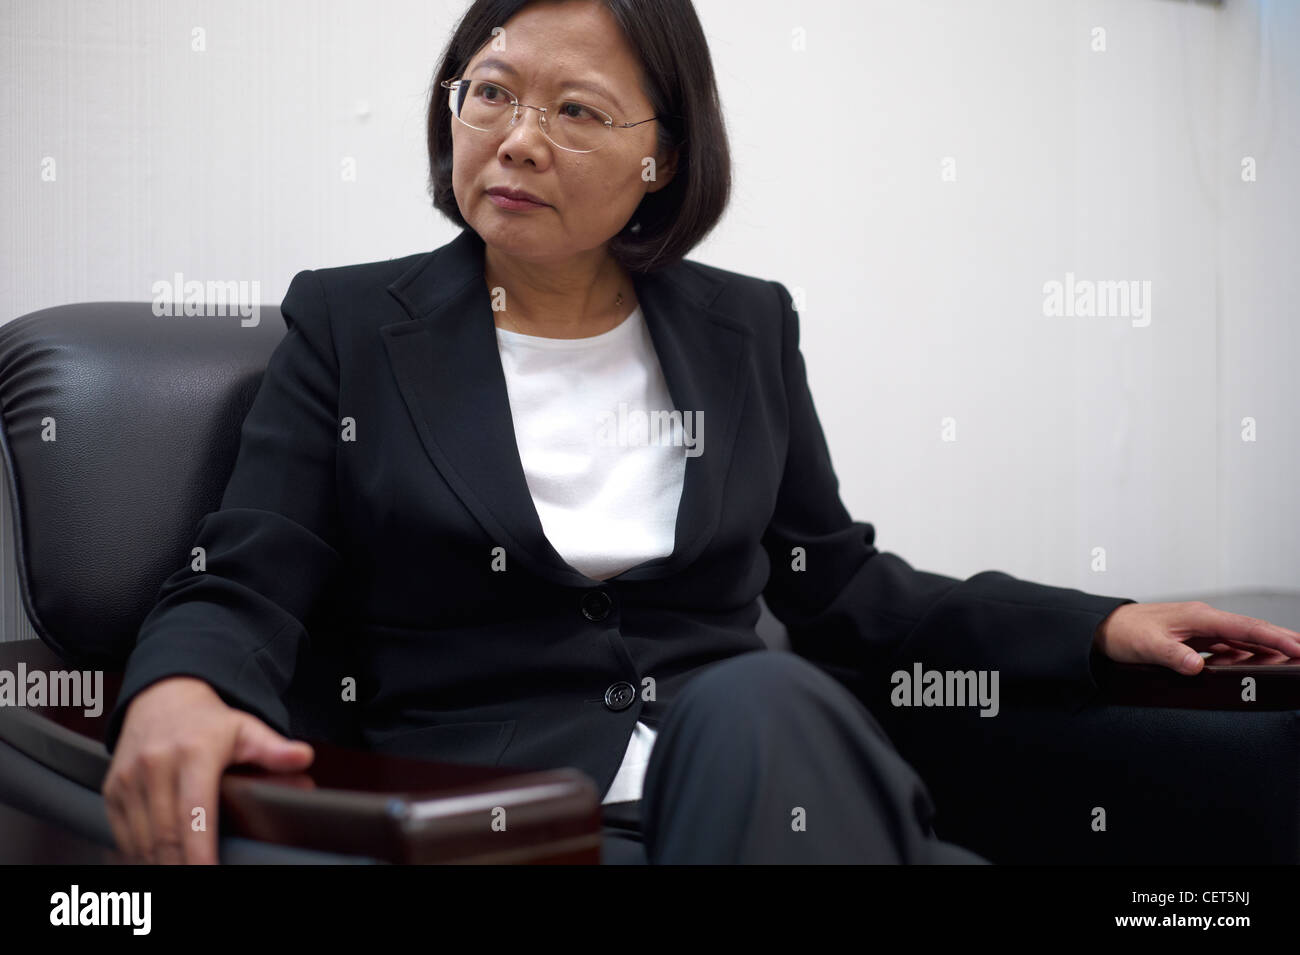 The first female Taiwanese presidential candidate Tsai Ing Wen gives an interview in her election office - Stock Image